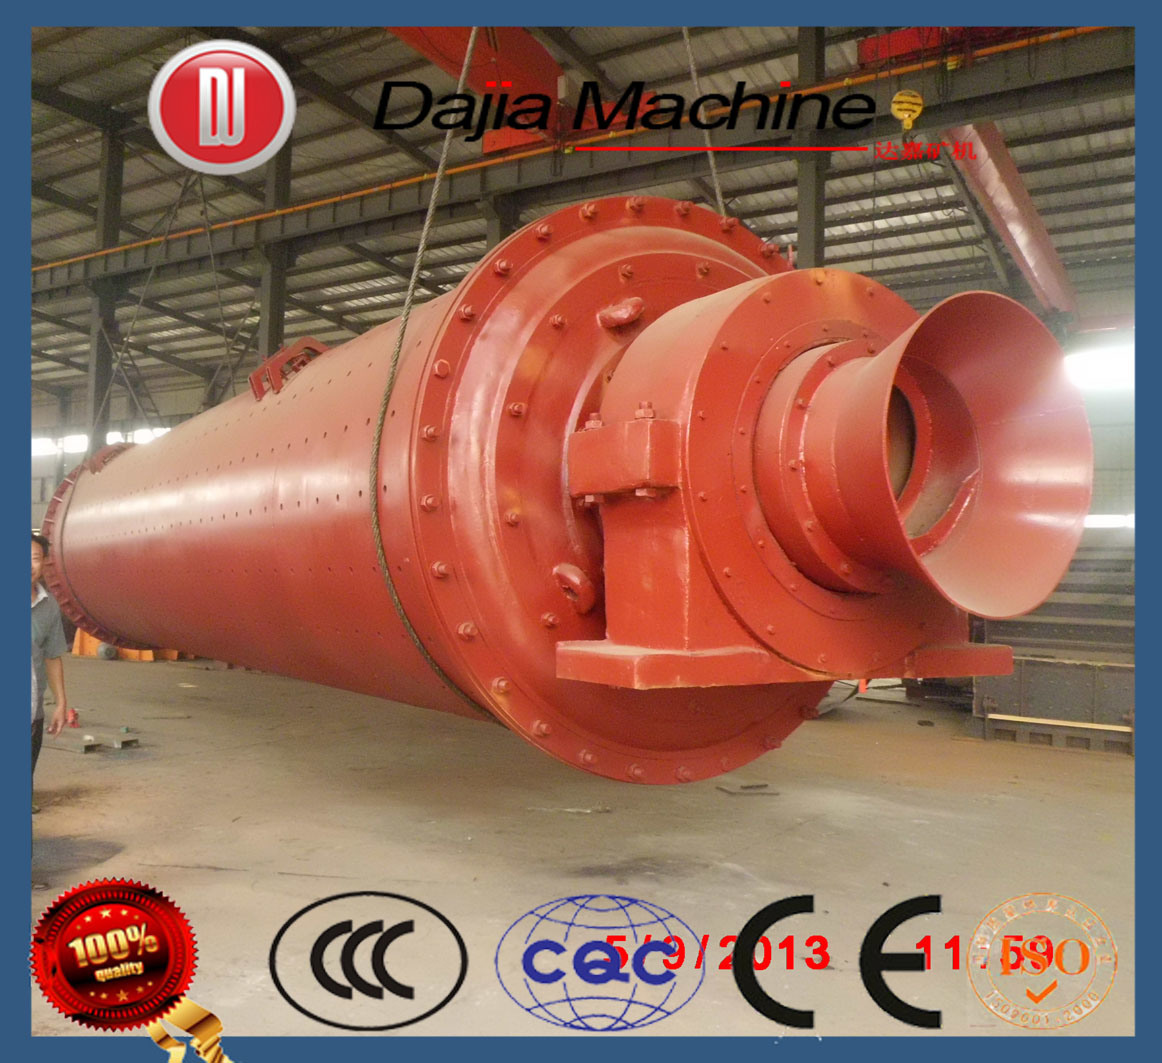 Mining Grinding Ball Mill for Ore, Cement Clinker, Gypsum, Glass, Ceramic, etc.